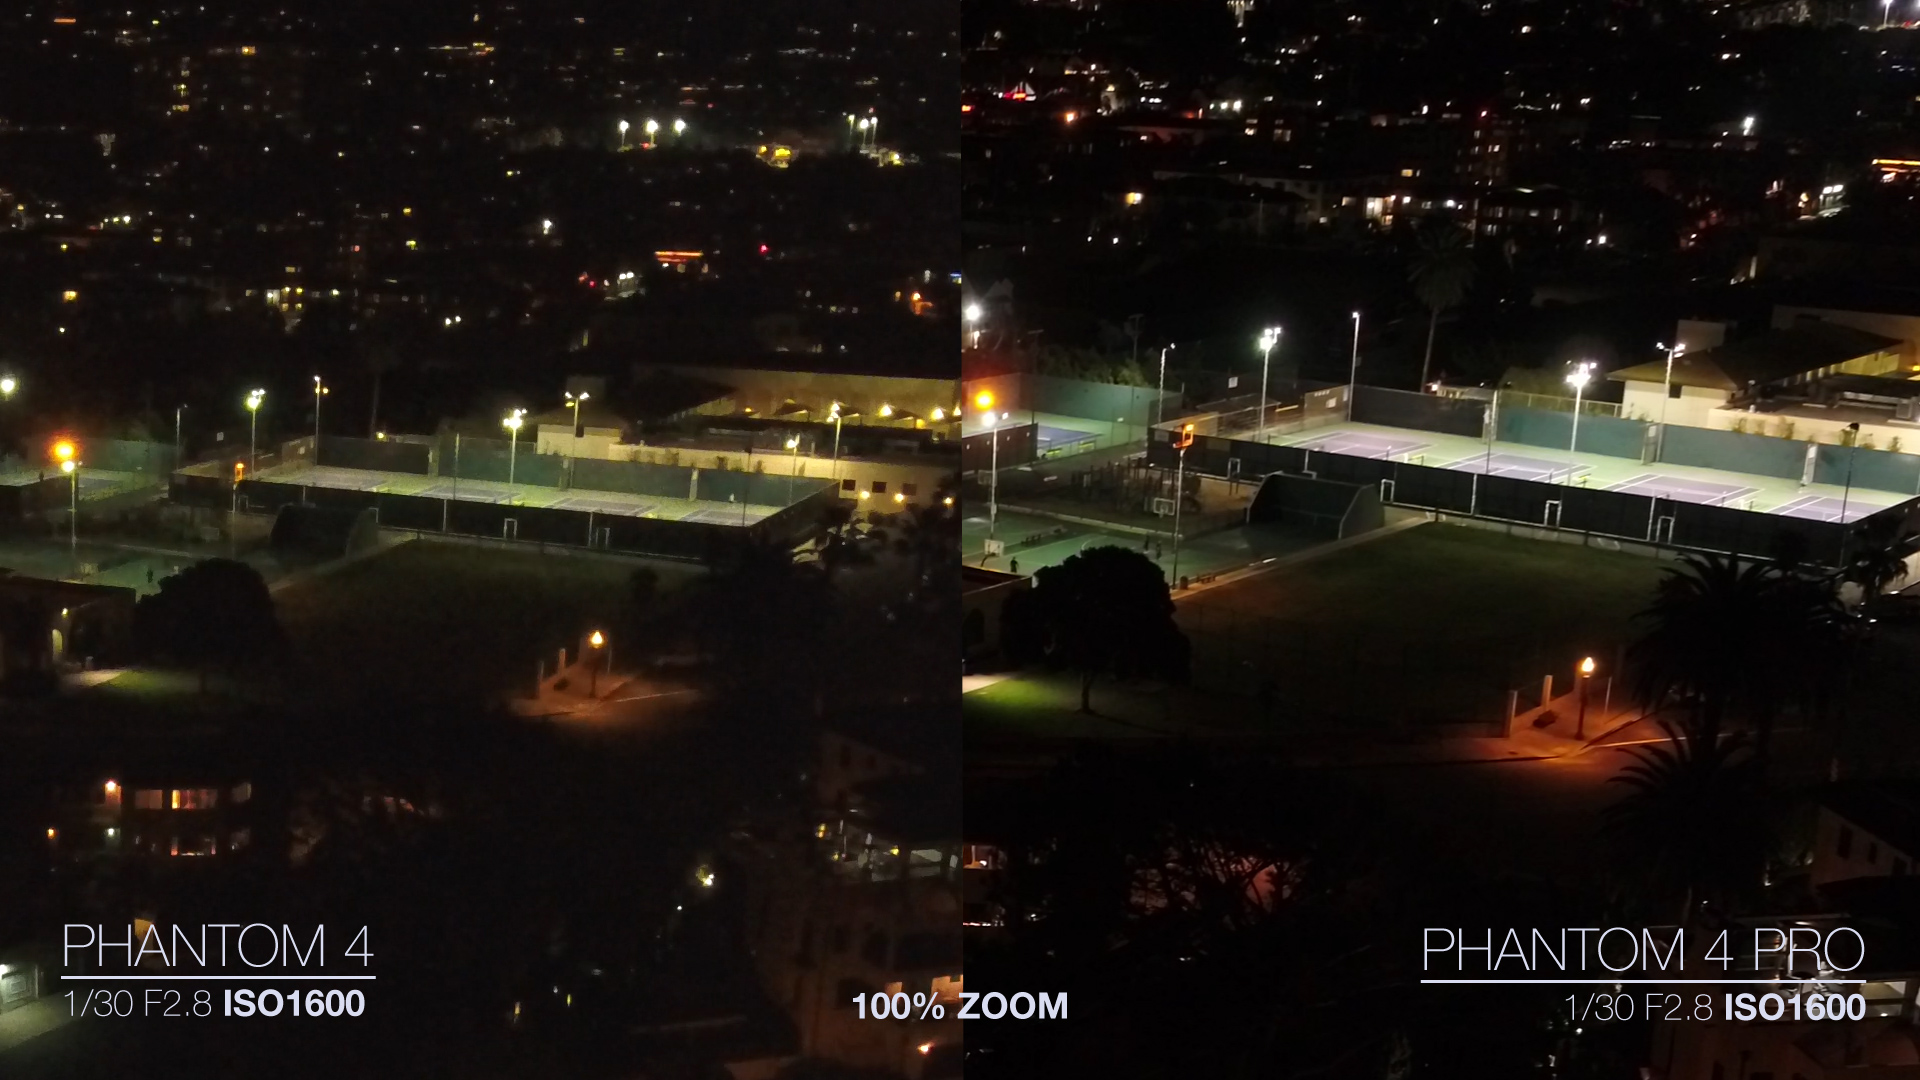 DJI Phantom 4 Pro VS Phantom 4 Low light Video ISO Comparison & Phantom 4 Pro VS Phantom 4 Low light Video ISO Comparison azcodes.com